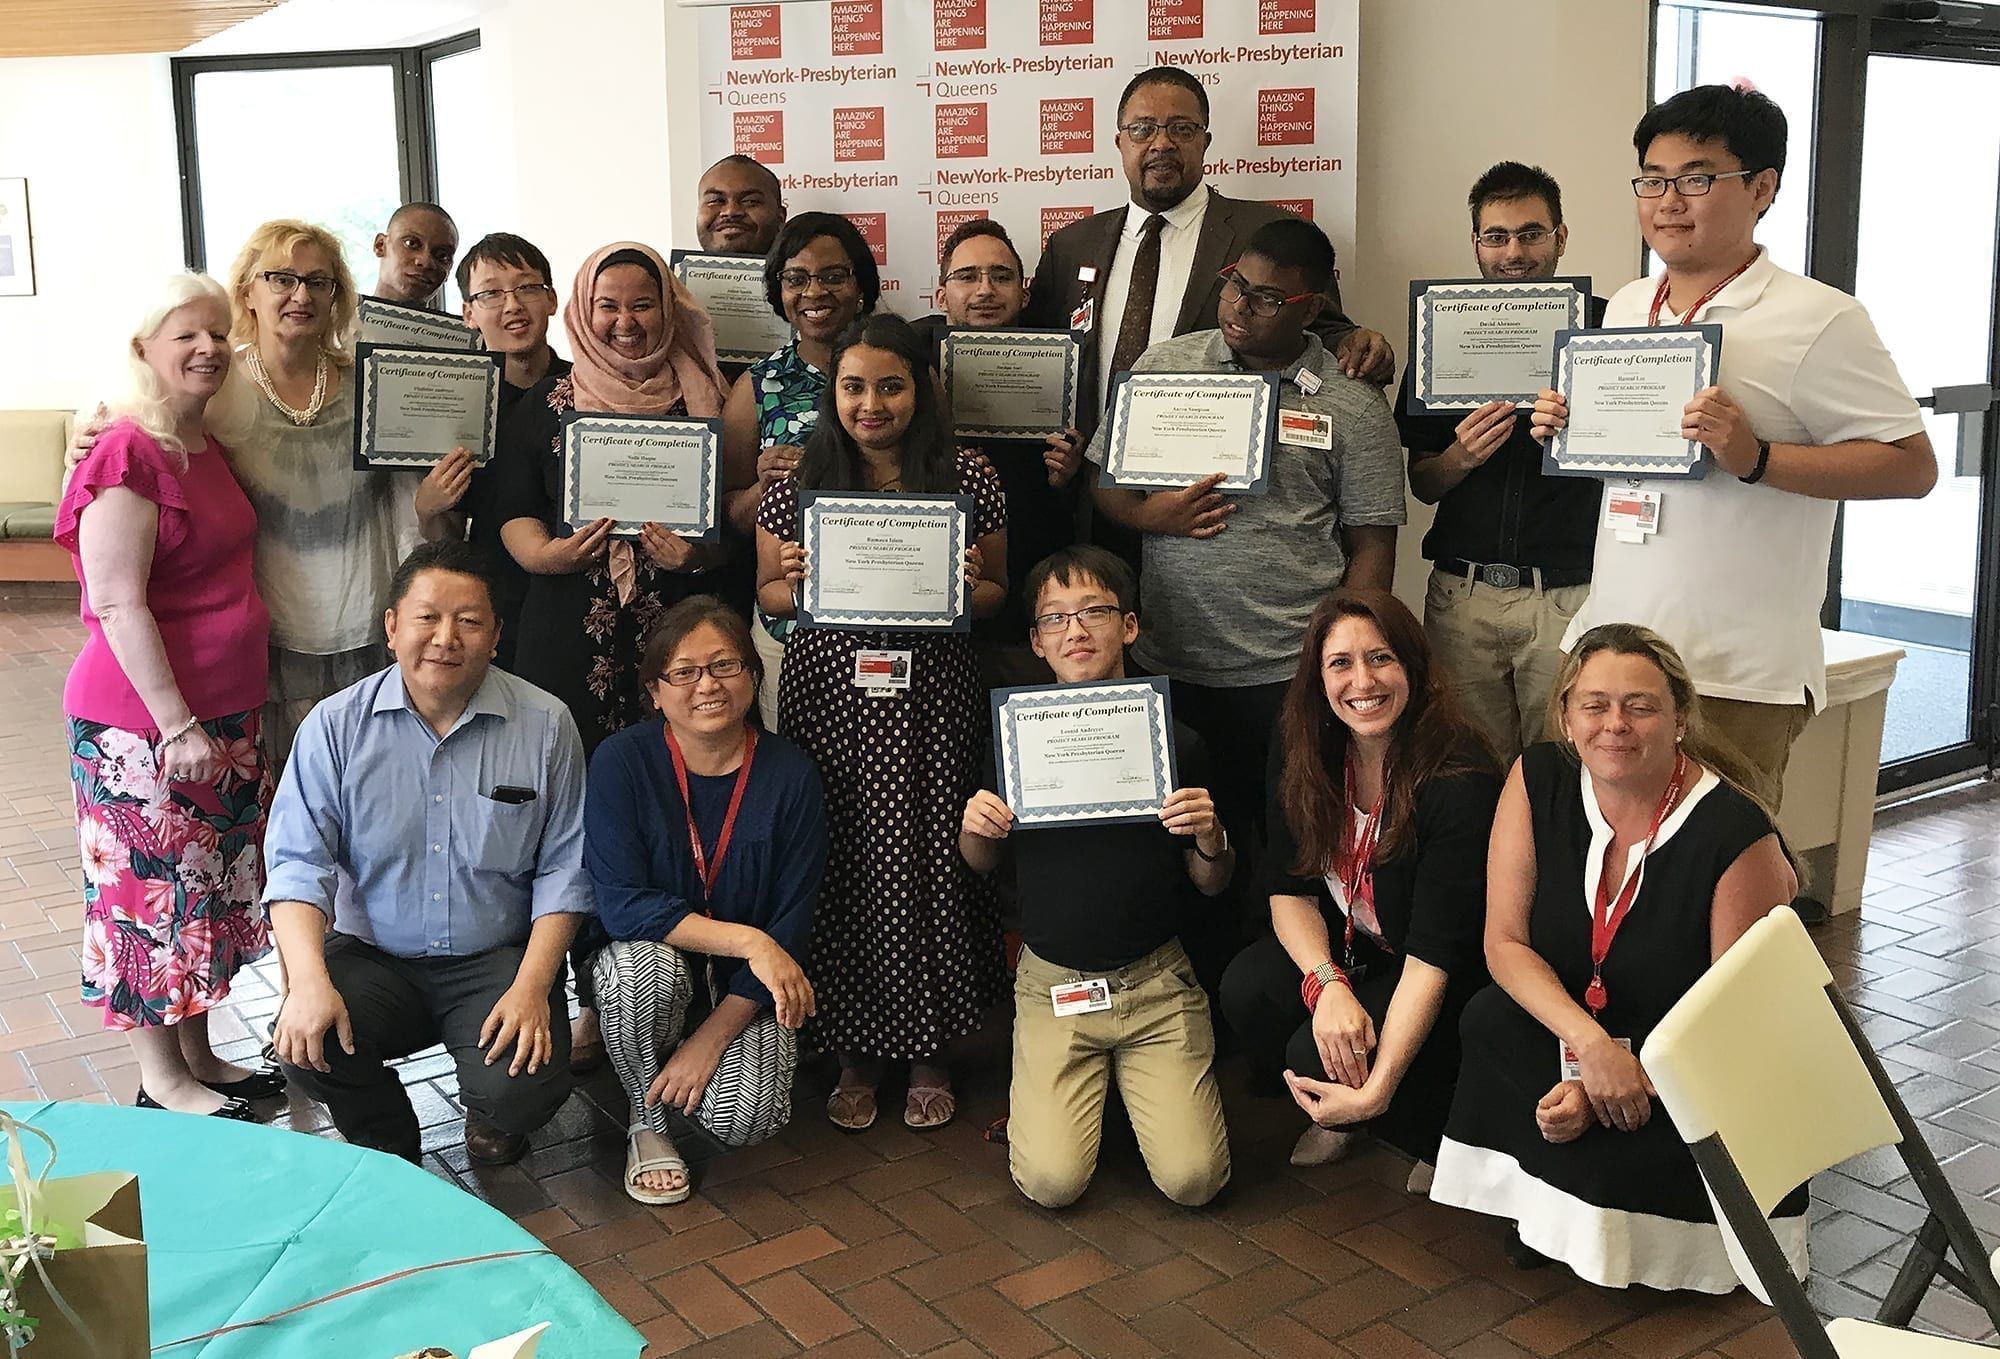 Project Search Graduations Take Place Across All Five Boroughs